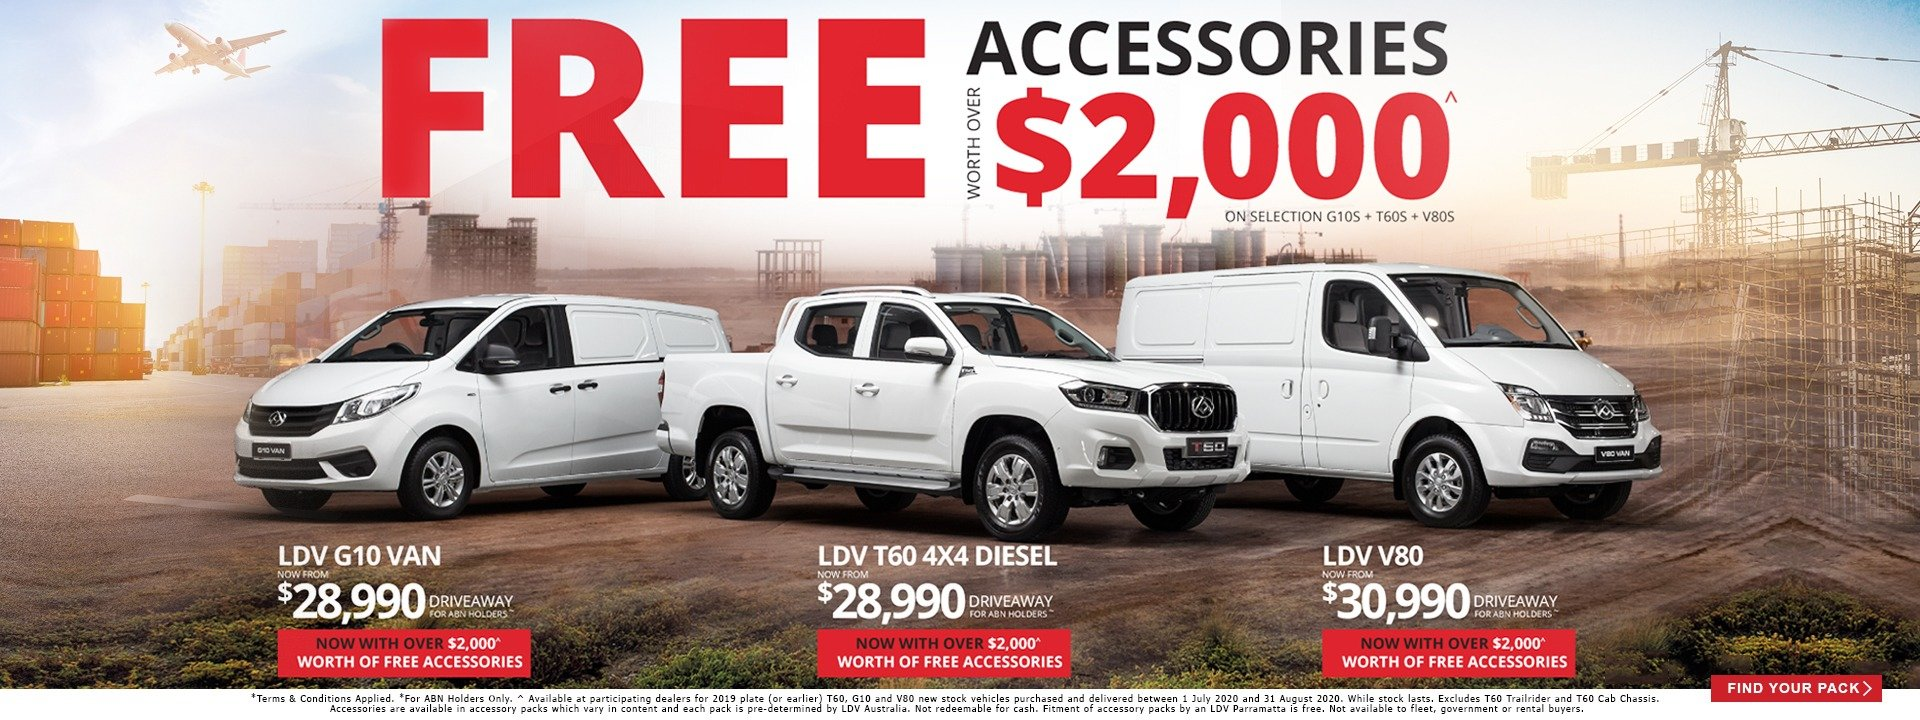 LDV Parramatta $2000 Off LDV Vehicles